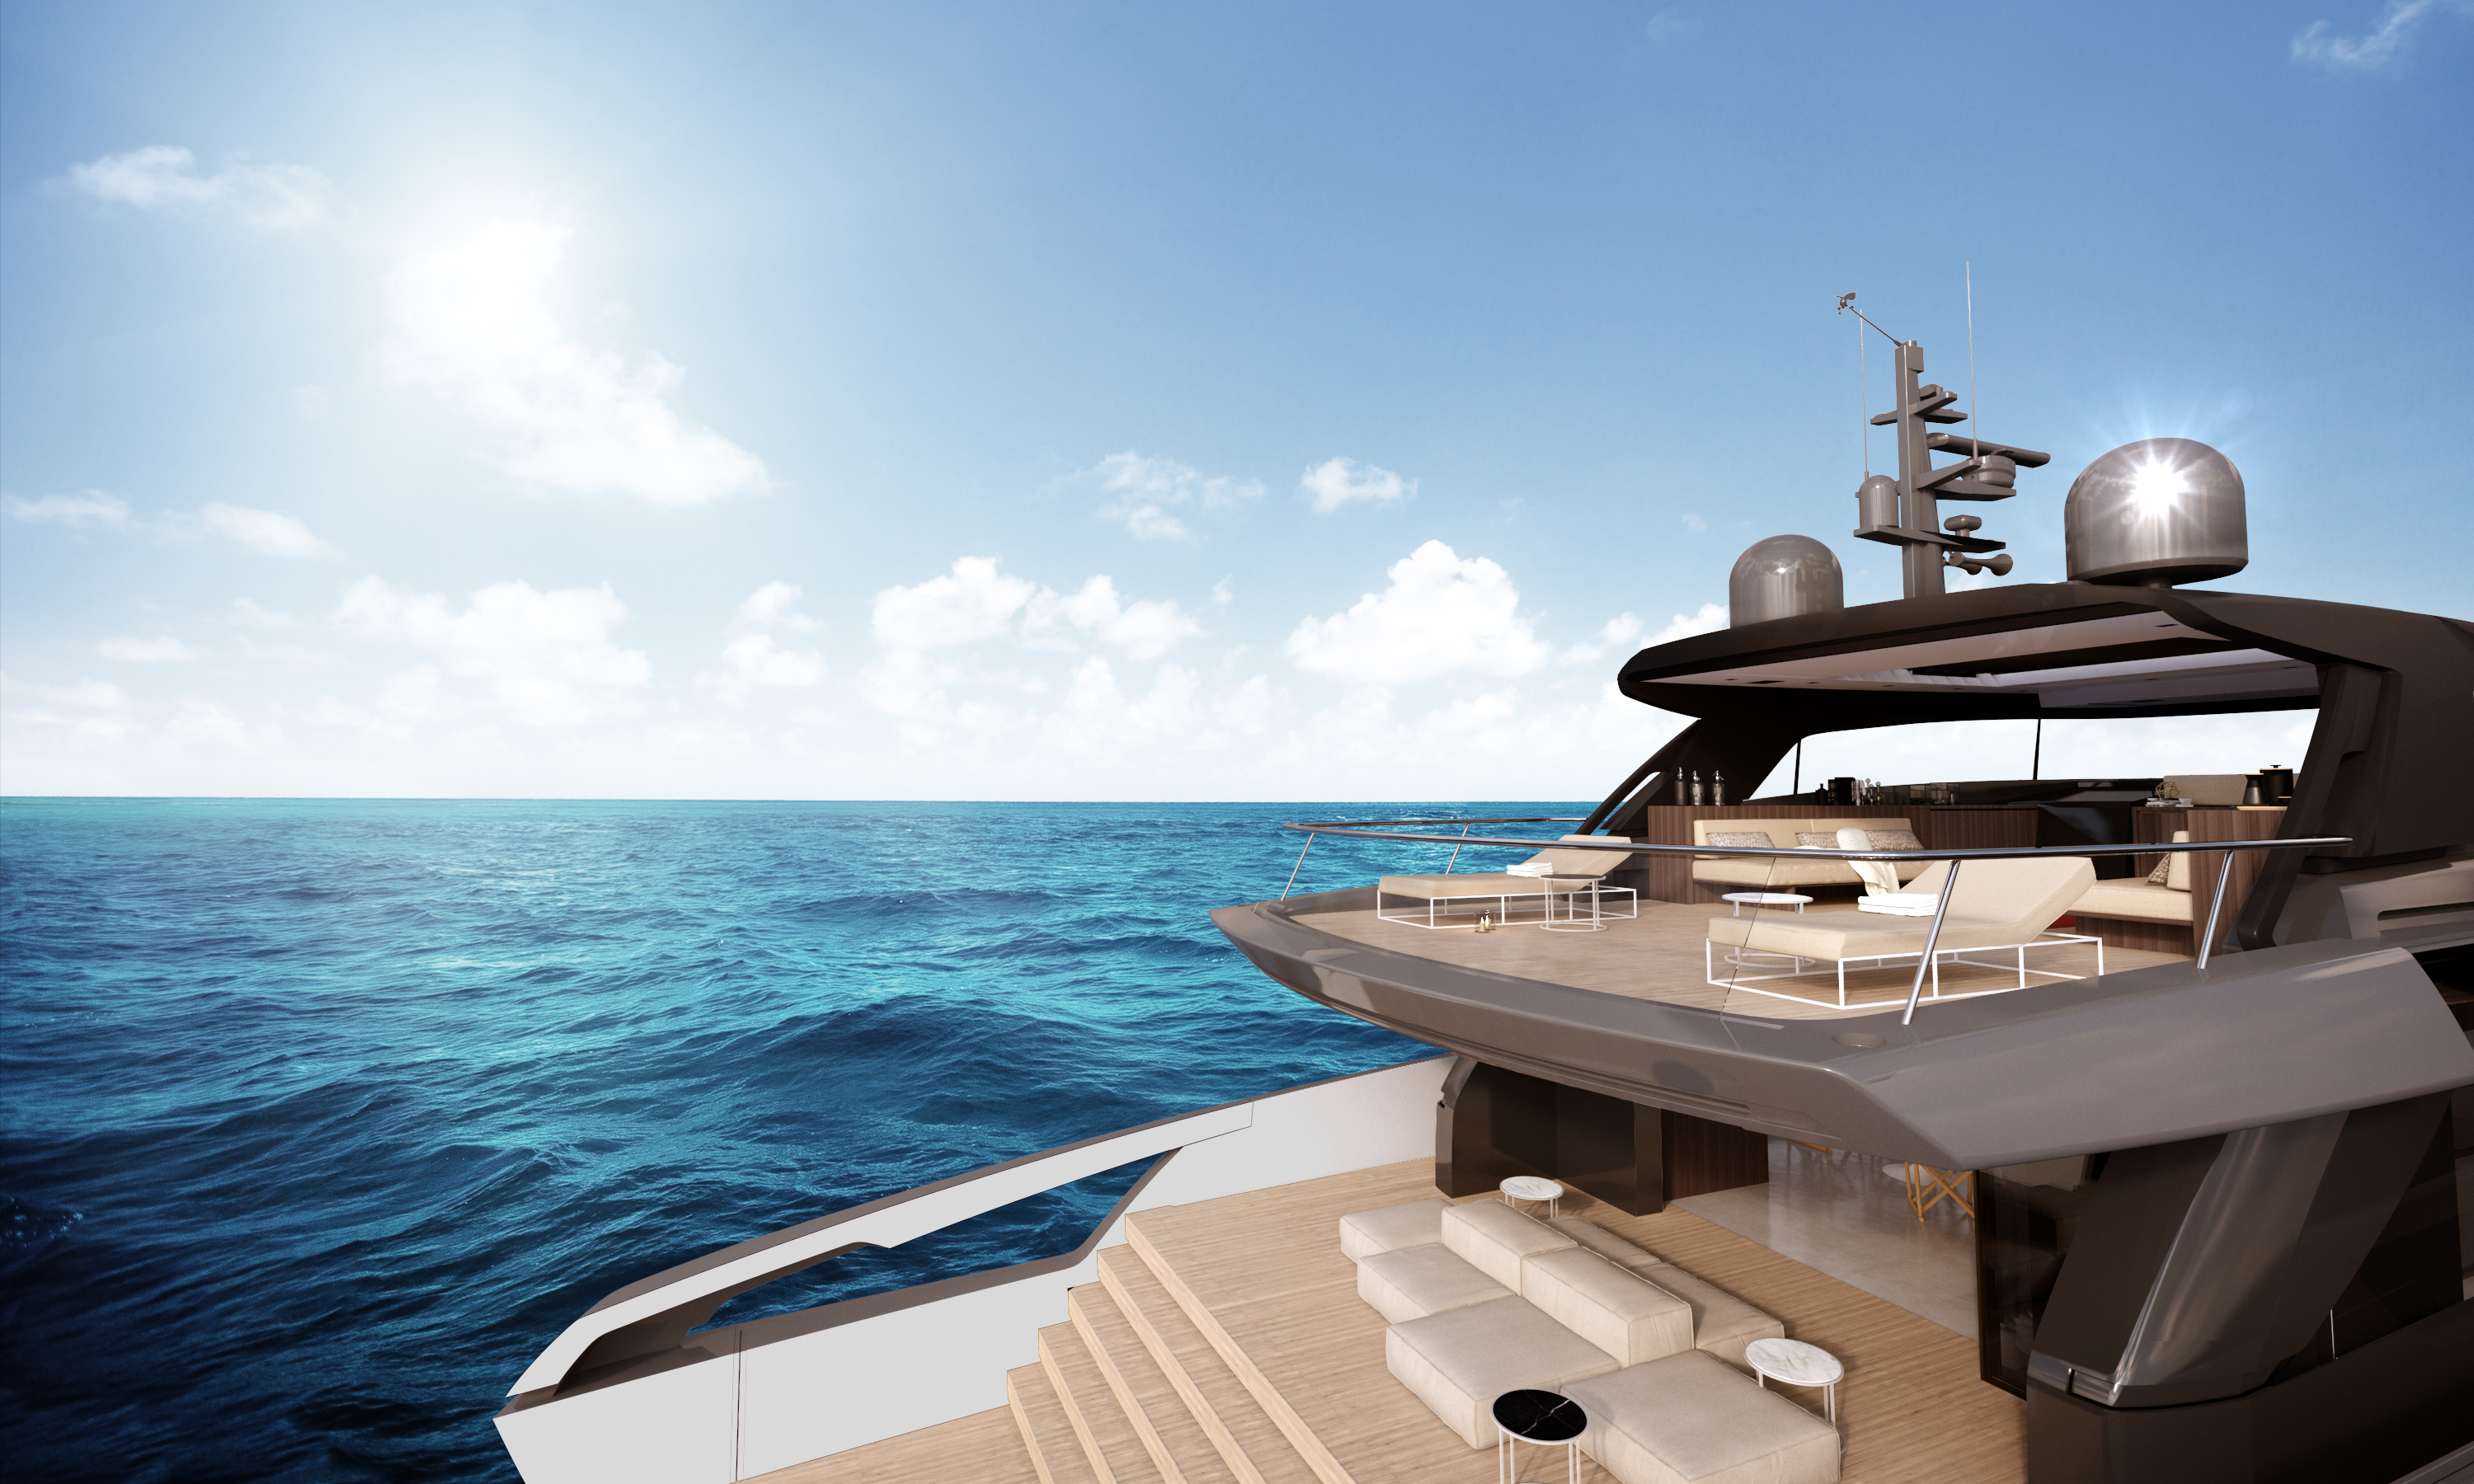 Aft view of the Sanlorenzo luxury yacht SX88